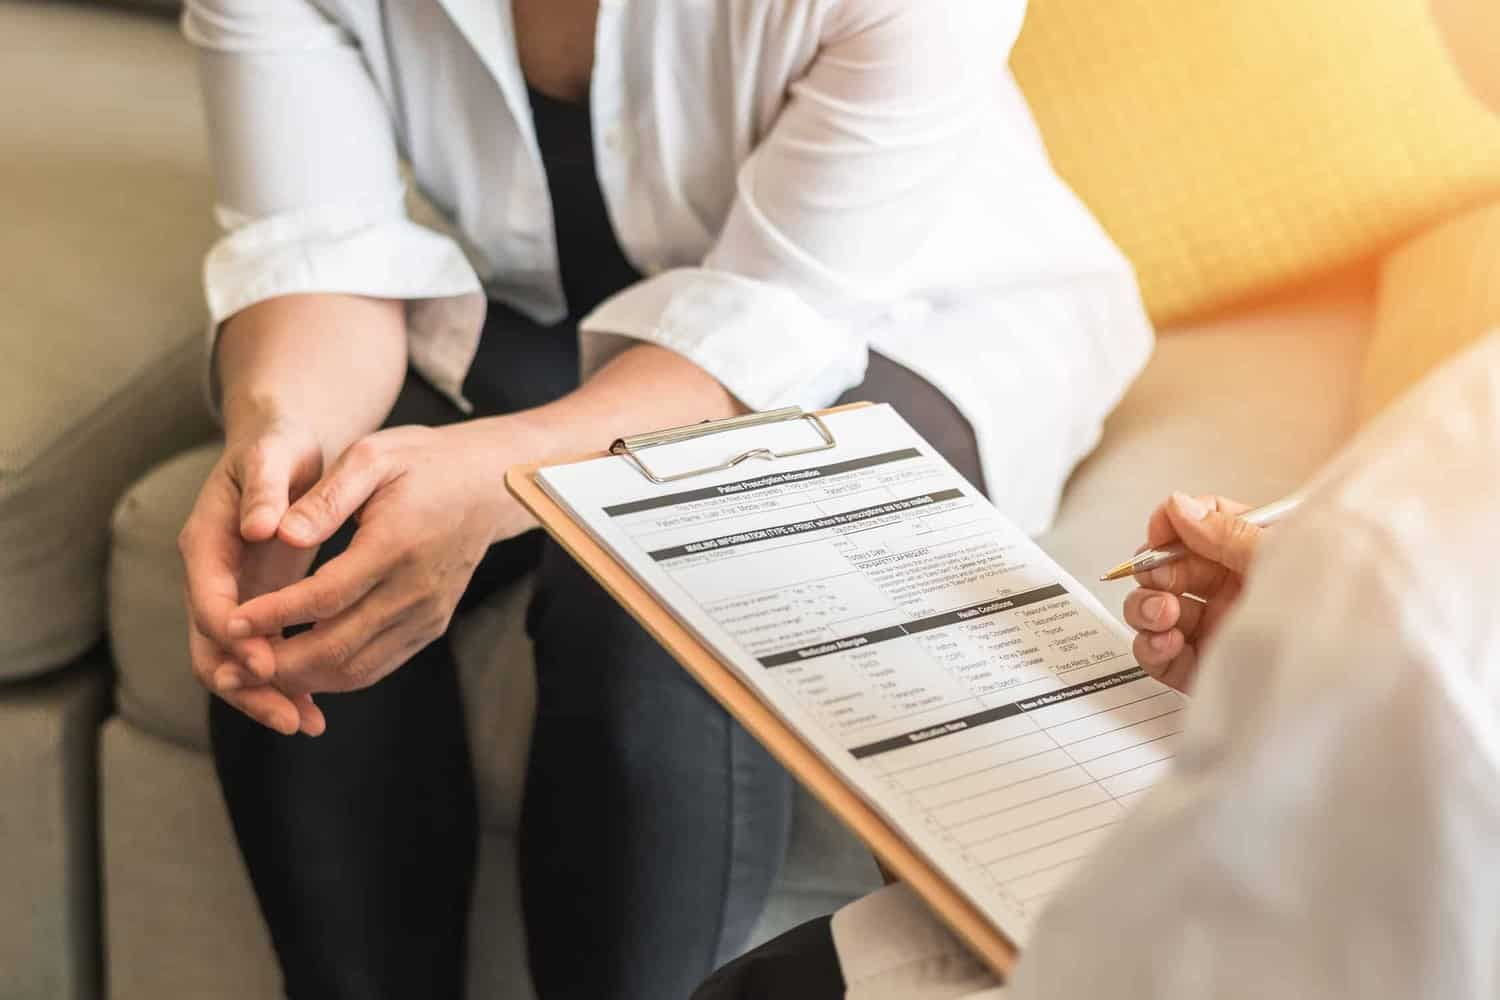 Therapist or doctor sitting on couch asking patient questions.